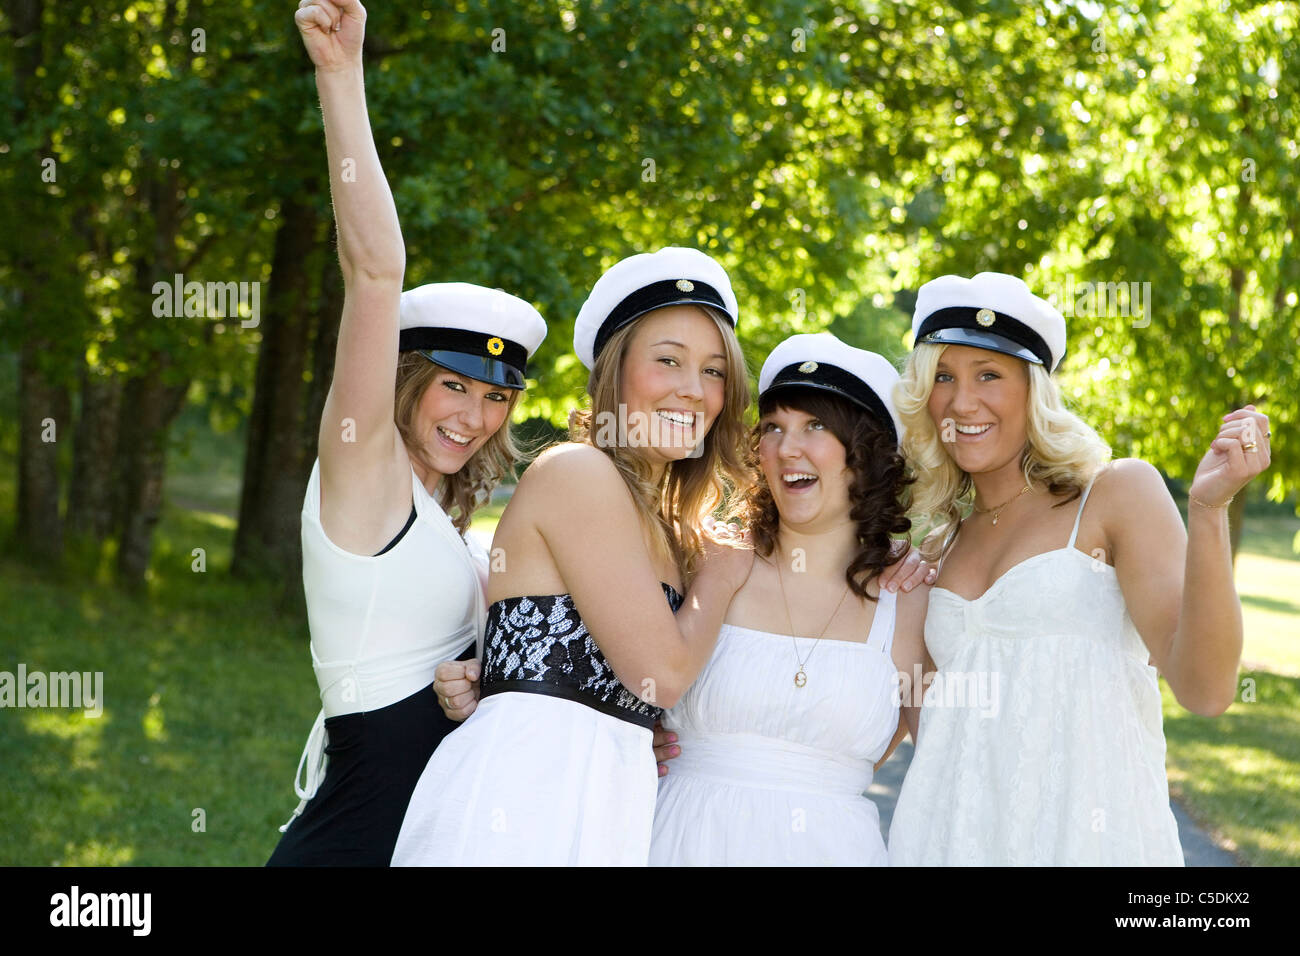 Portrait of four happy female students in graduation hats against blurred trees - Stock Image